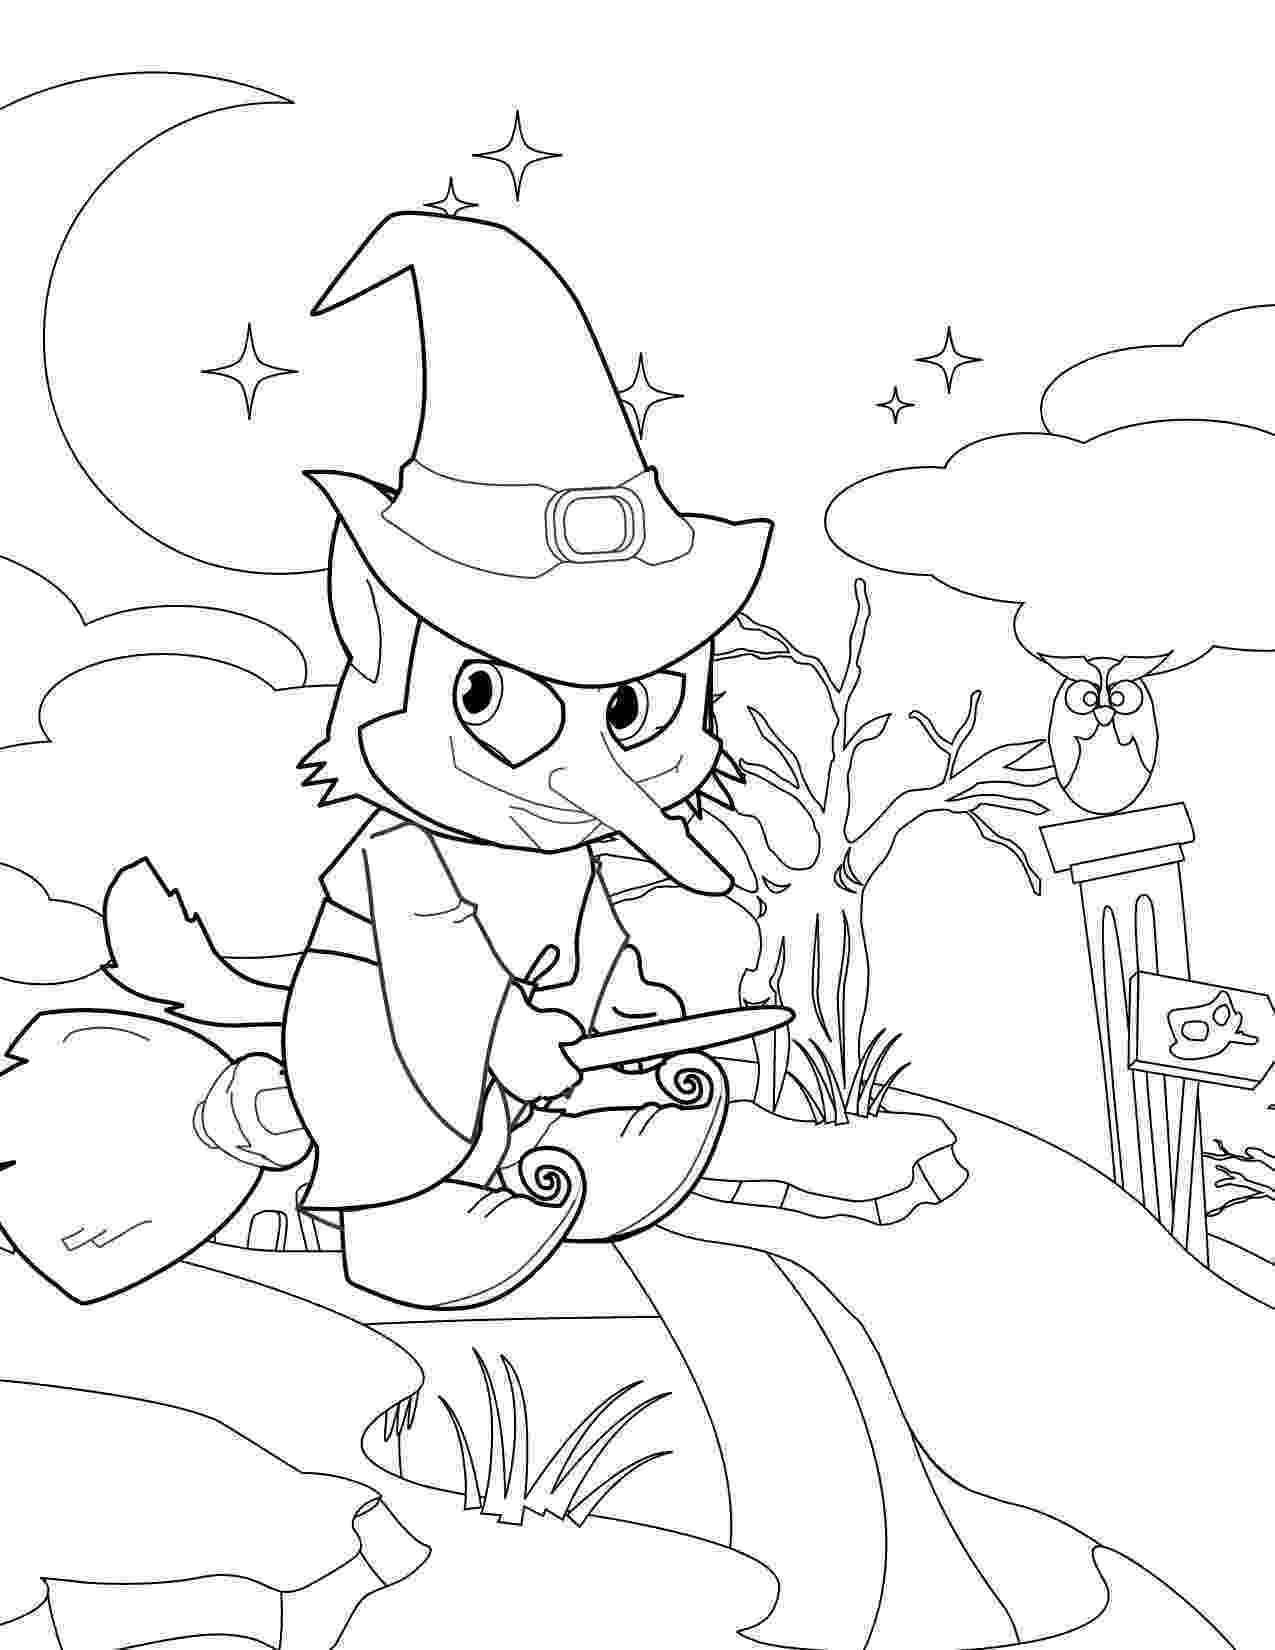 coloring games handipoints coloring pages primarygamescom coloring games